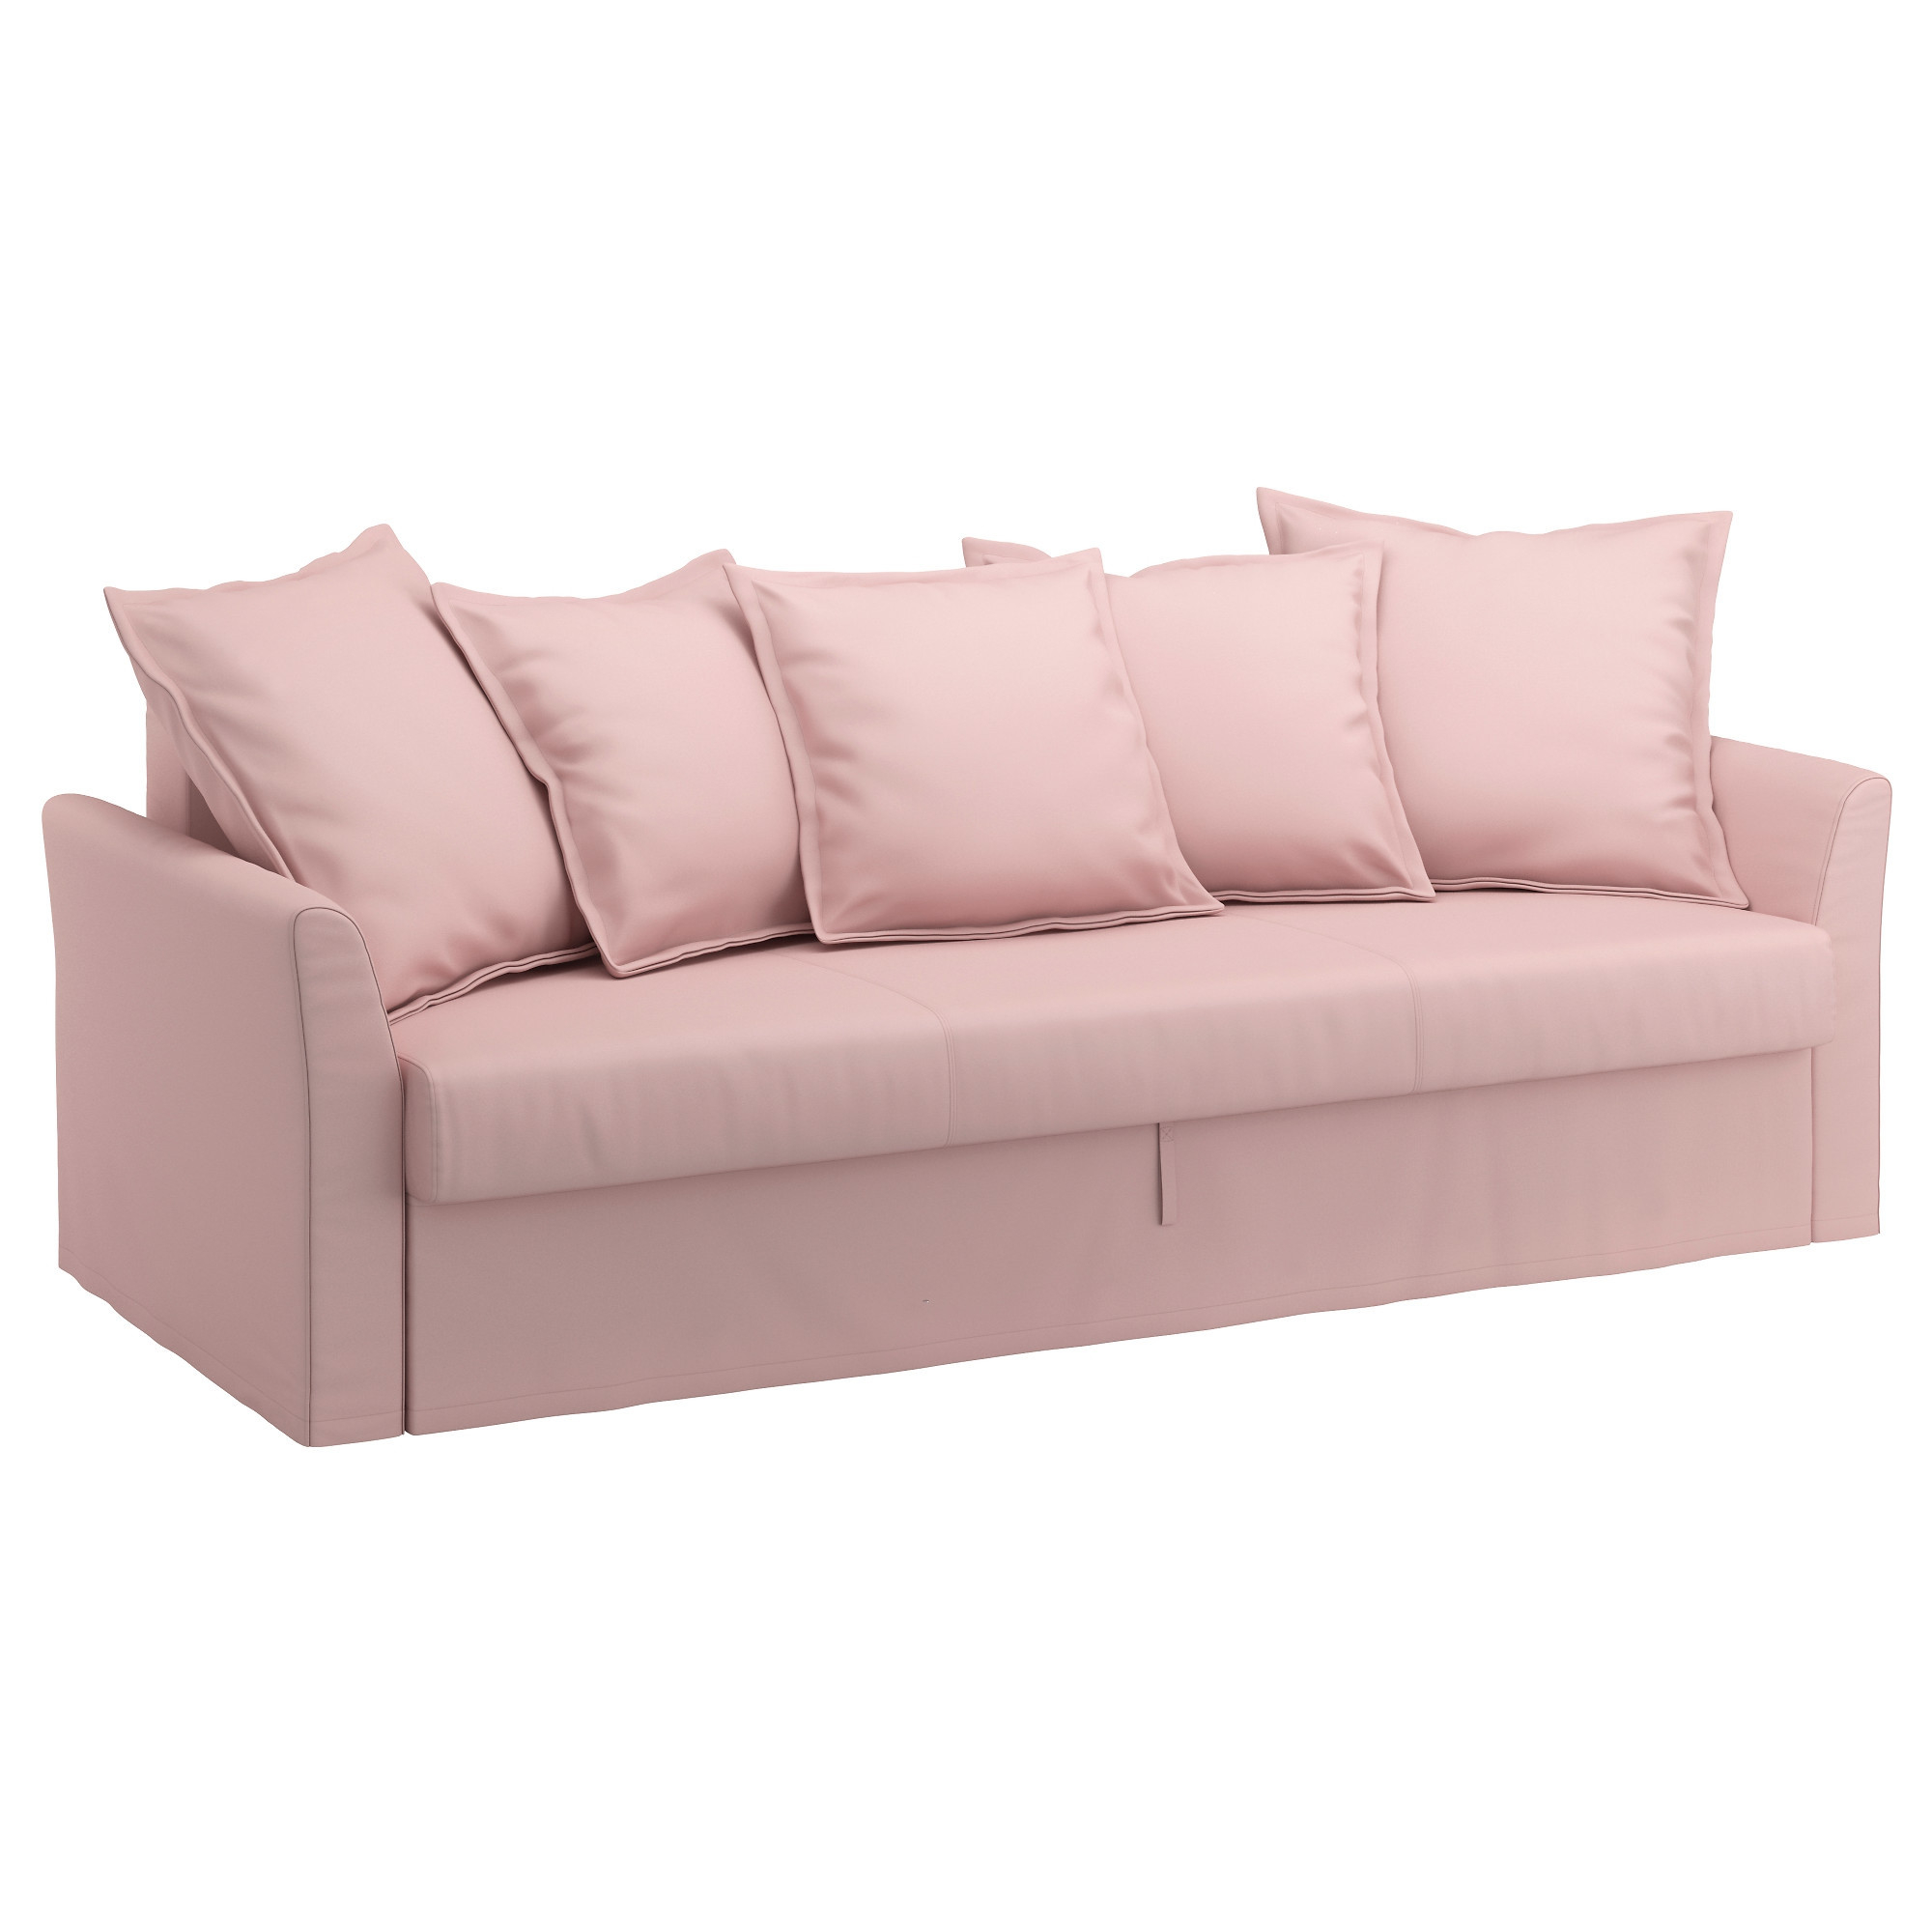 Sofa Cama Italiano Ikea Tldn sofas Cama Elegant Best 25 sofa Cama Italiano Ideas On Pinterest